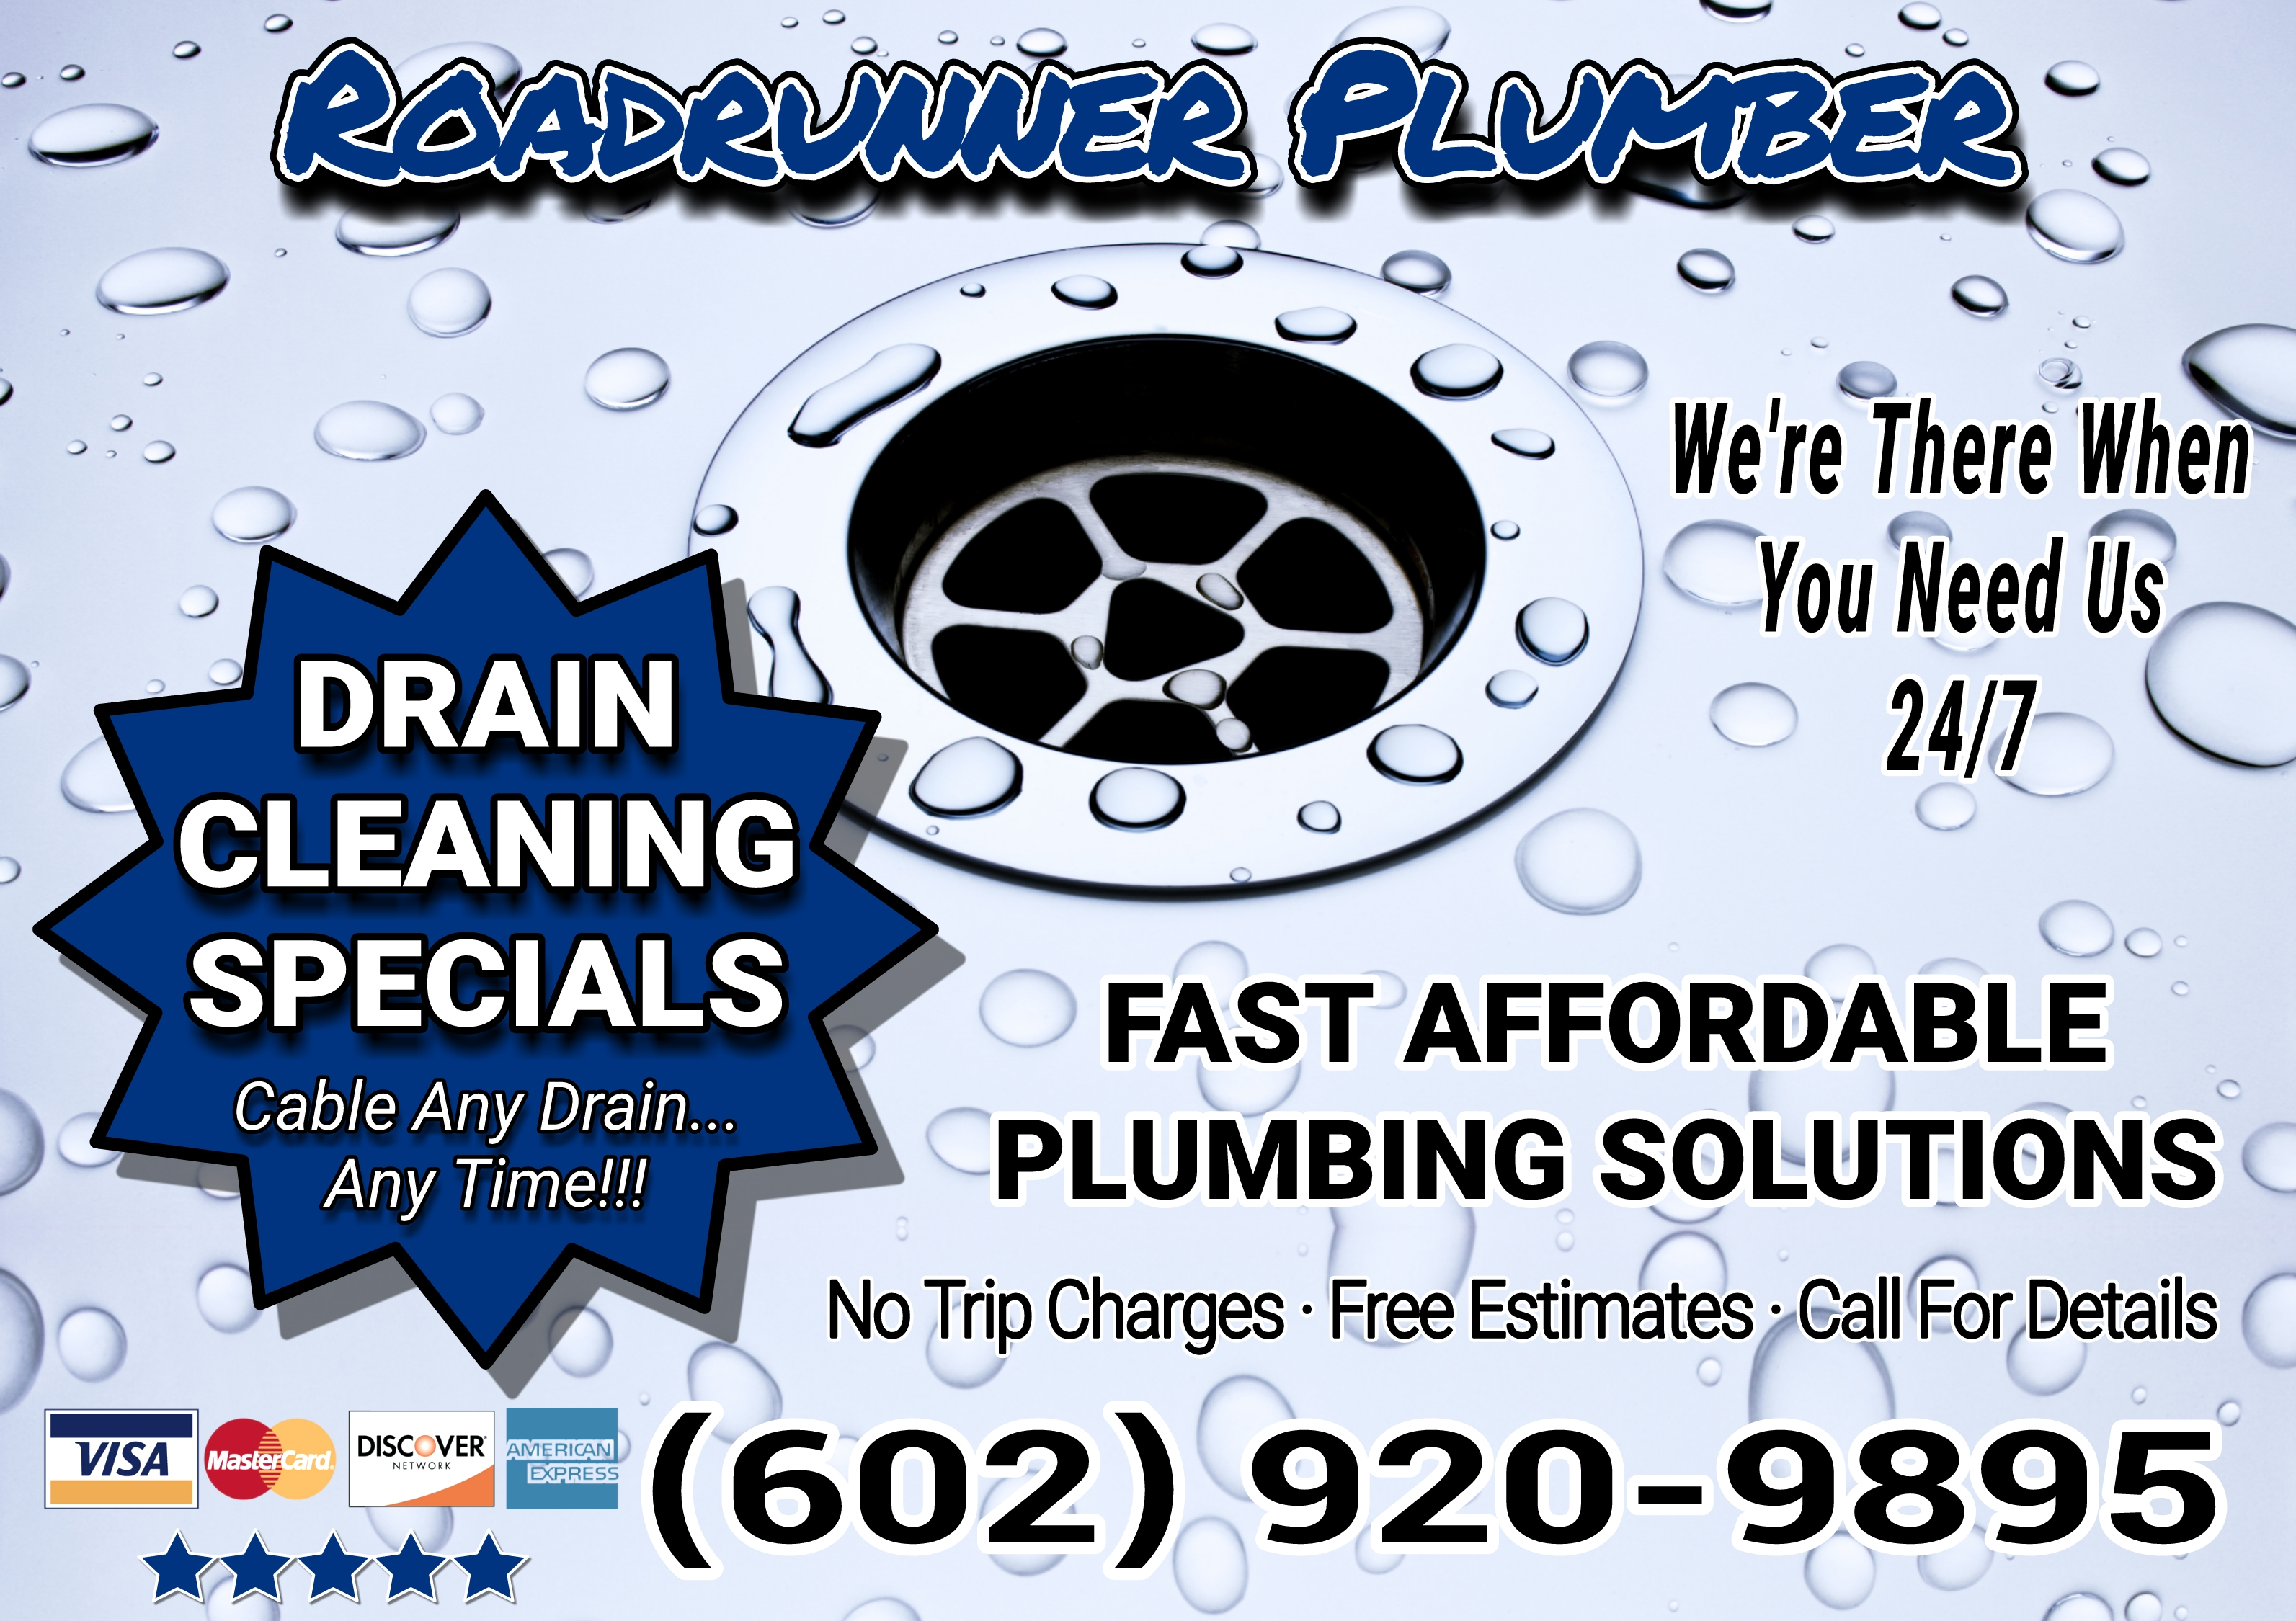 24/7 PLUMBING ★ DRAIN CLEANING SPECIALS ★ PLUMBER ☎︎